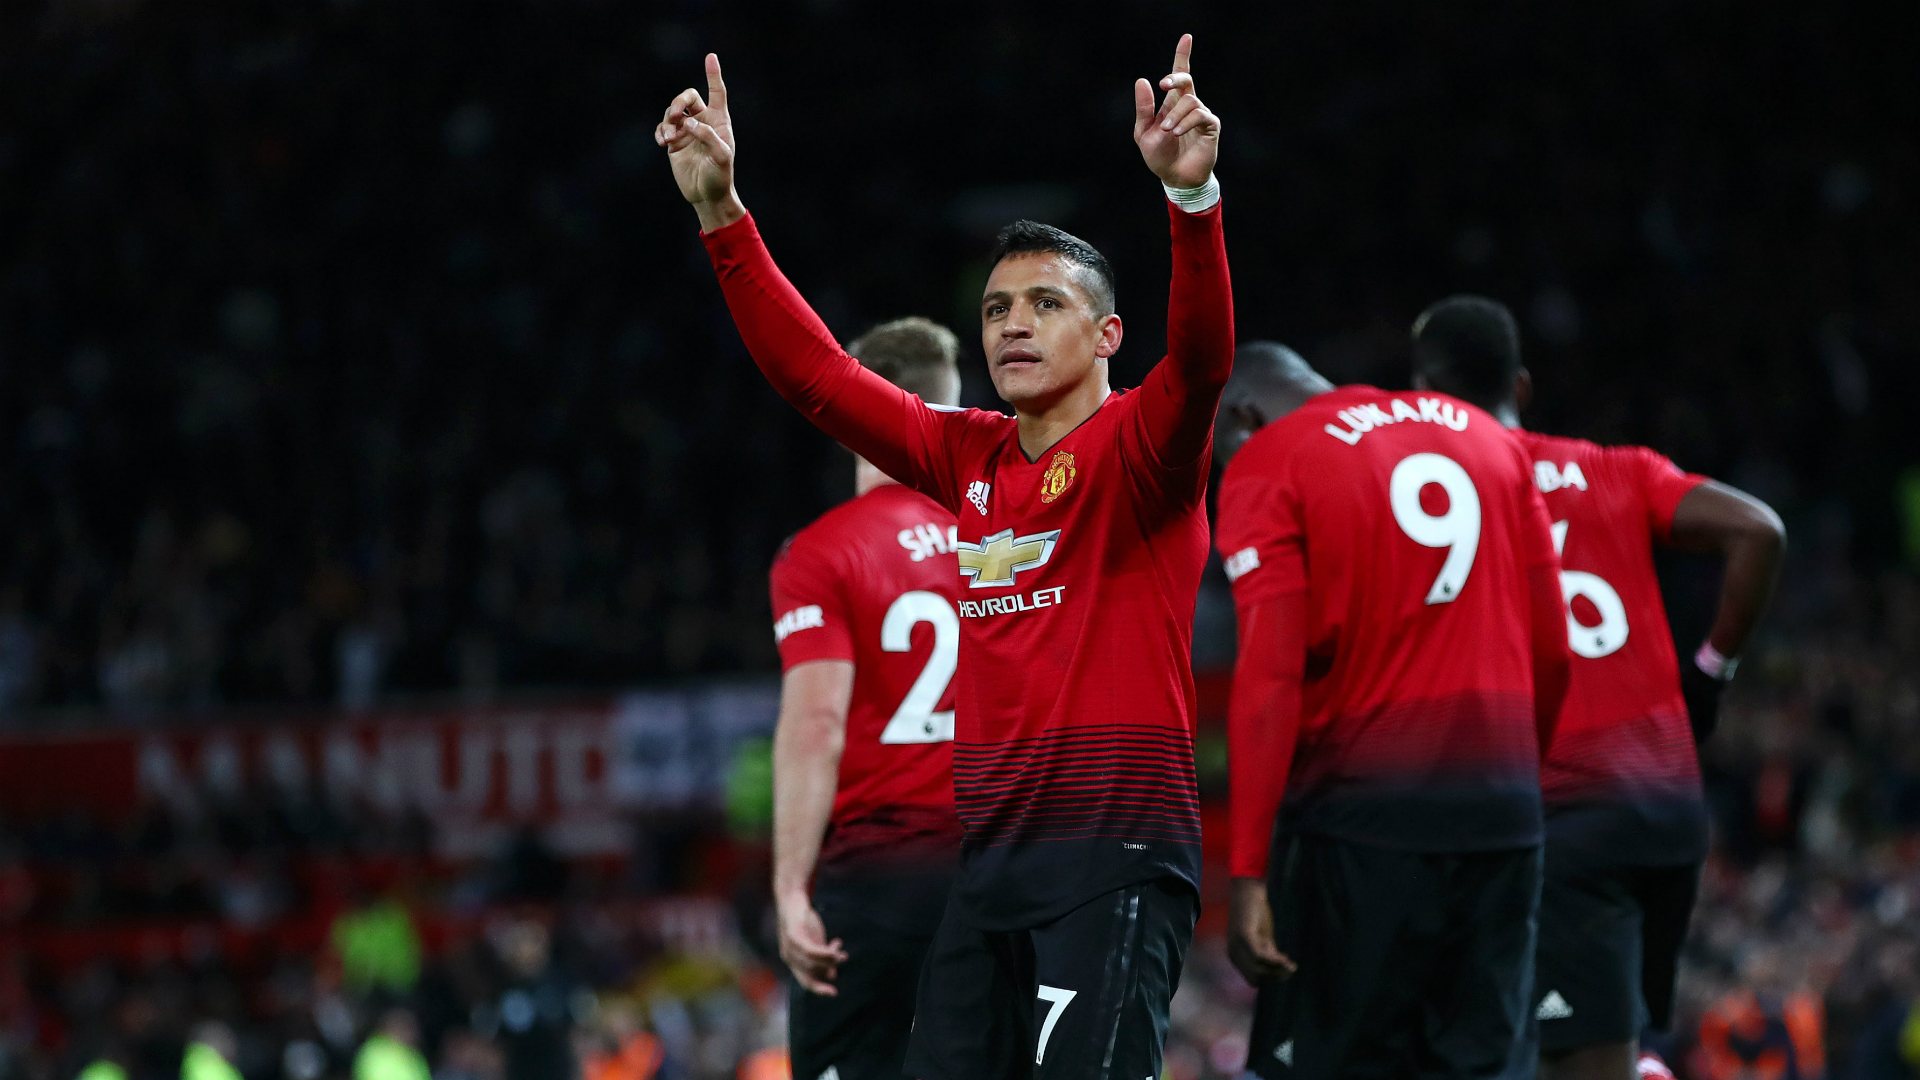 Sanchez targeting Champions League glory with Man United